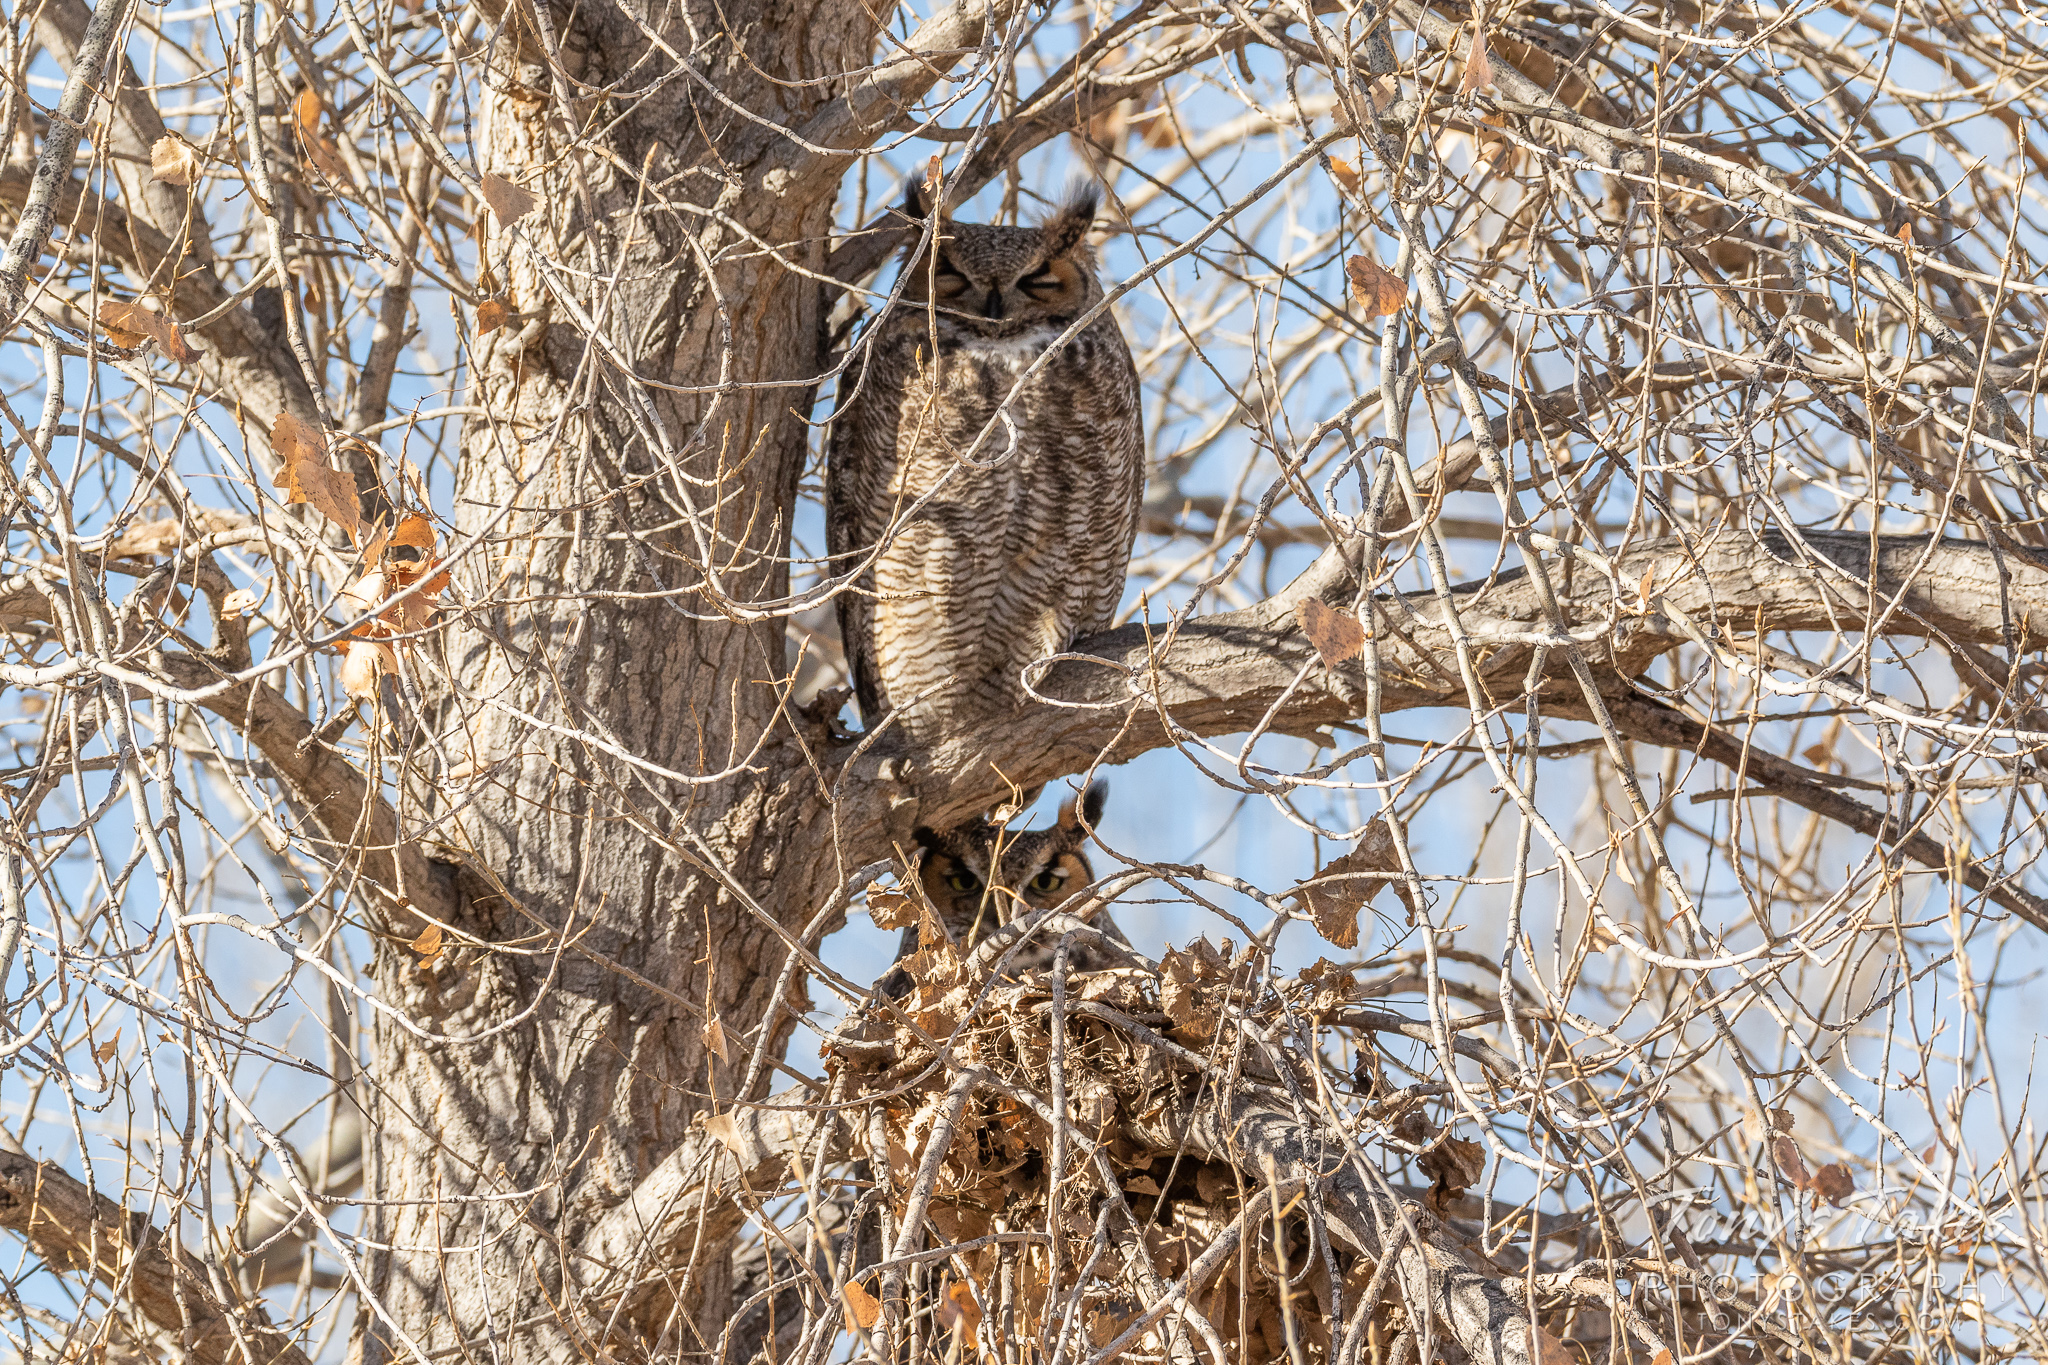 A pair of great horned owls keeps themselves concealed close to a tree's trunk in Thornton, Colorado. (© Tony's Takes)